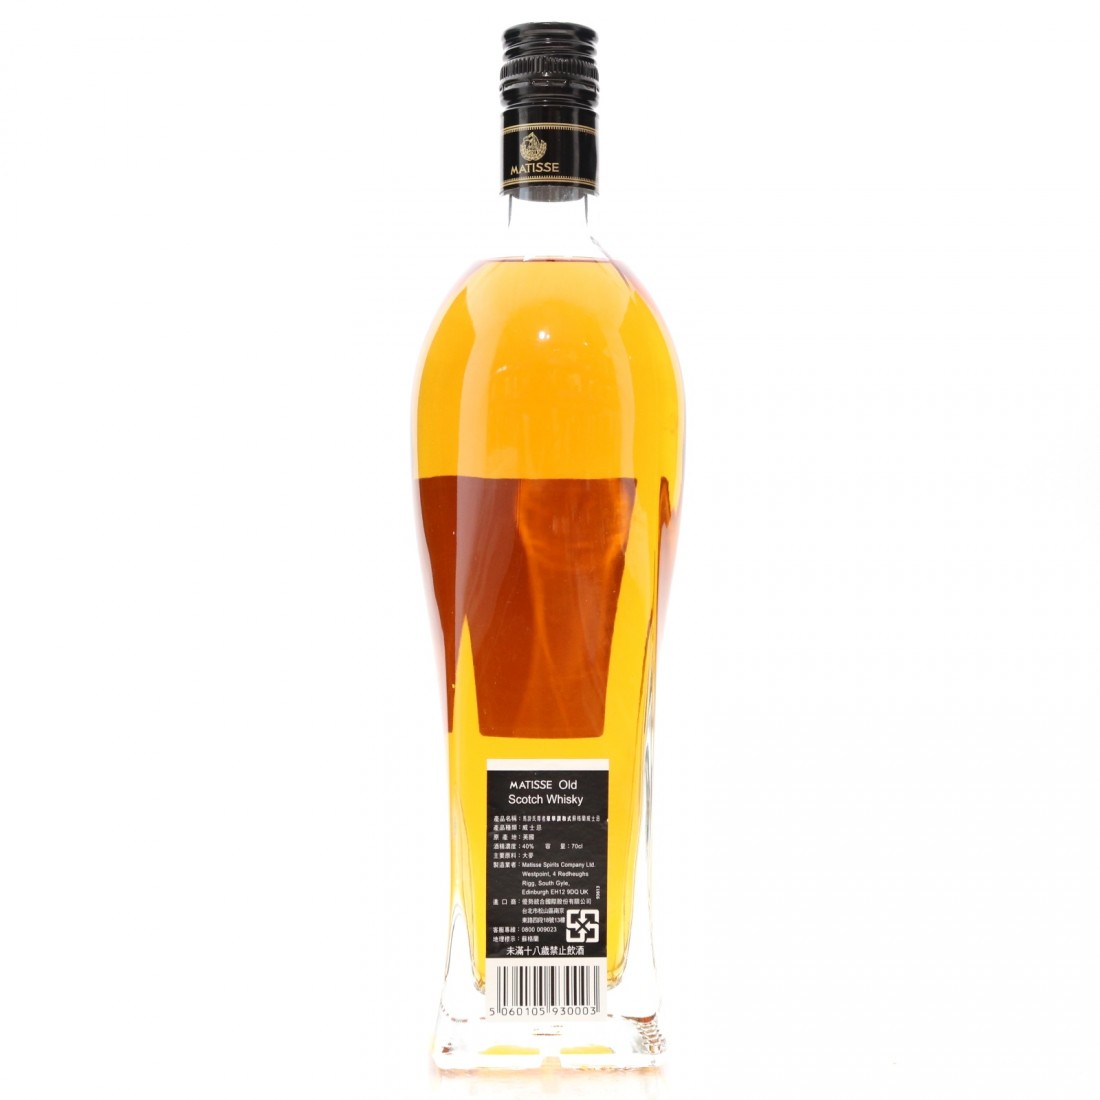 Matisse Old Scotch Whisky